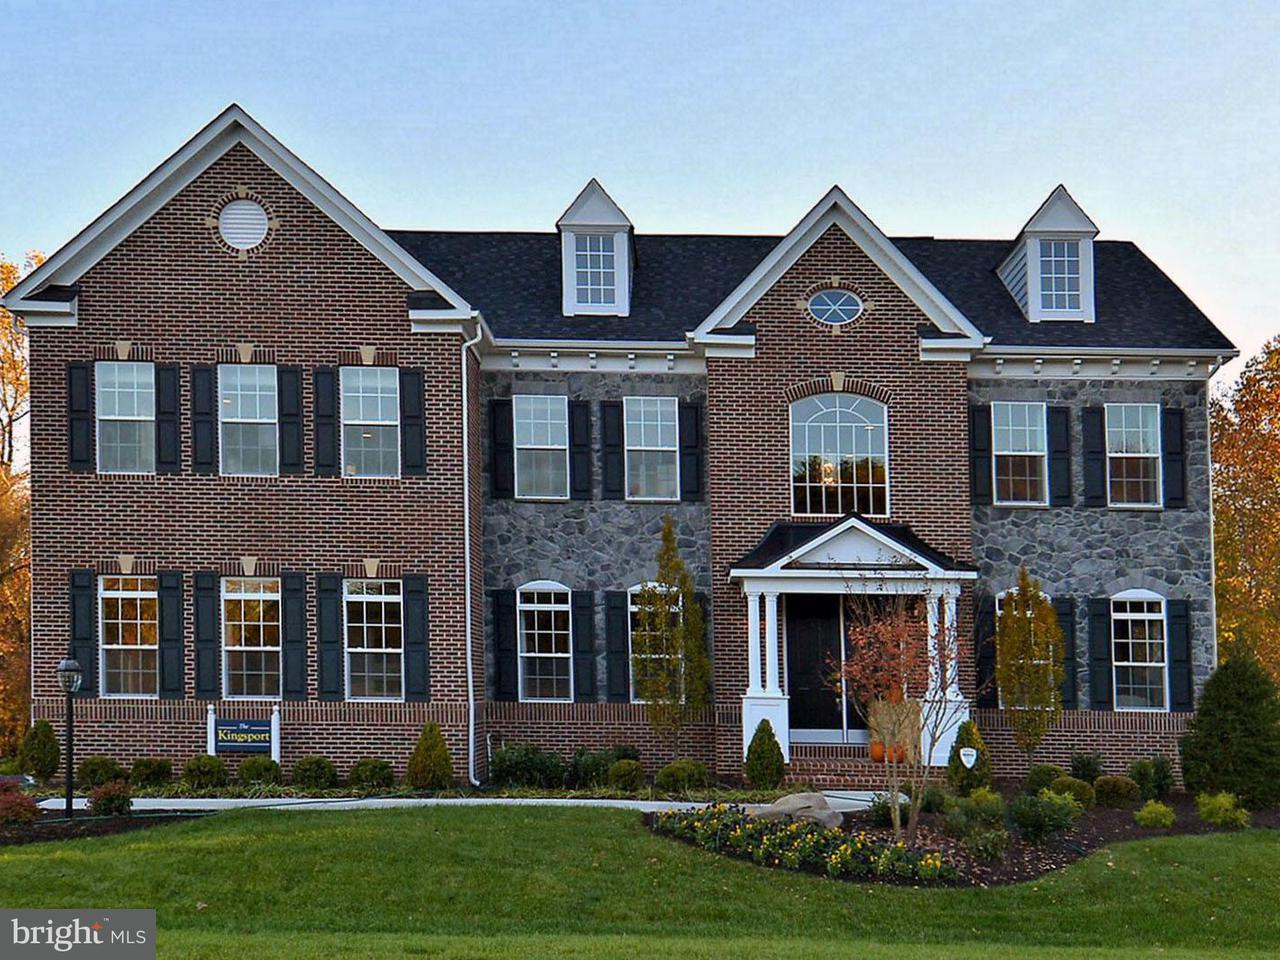 Single Family Home for Sale at 3322 SANG Road 3322 SANG Road Glenwood, Maryland 21738 United States